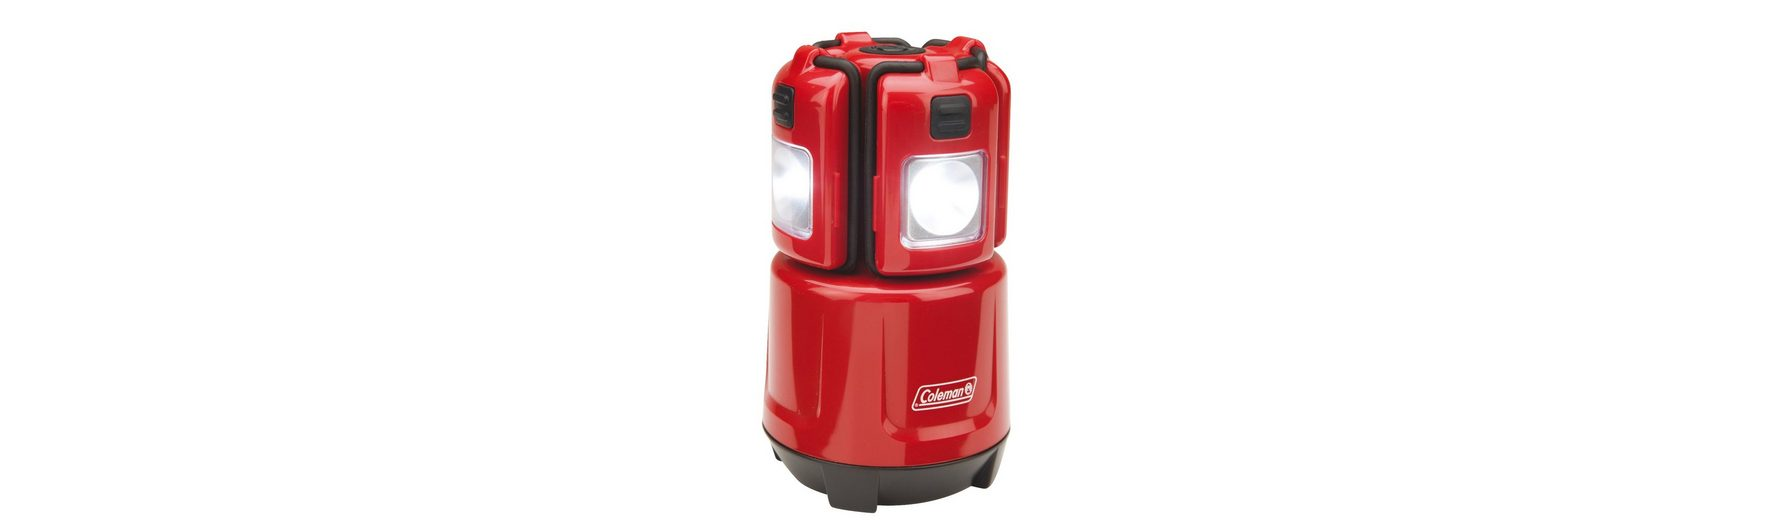 Coleman Camping-Beleuchtung »LED Micro Quad Lantern«